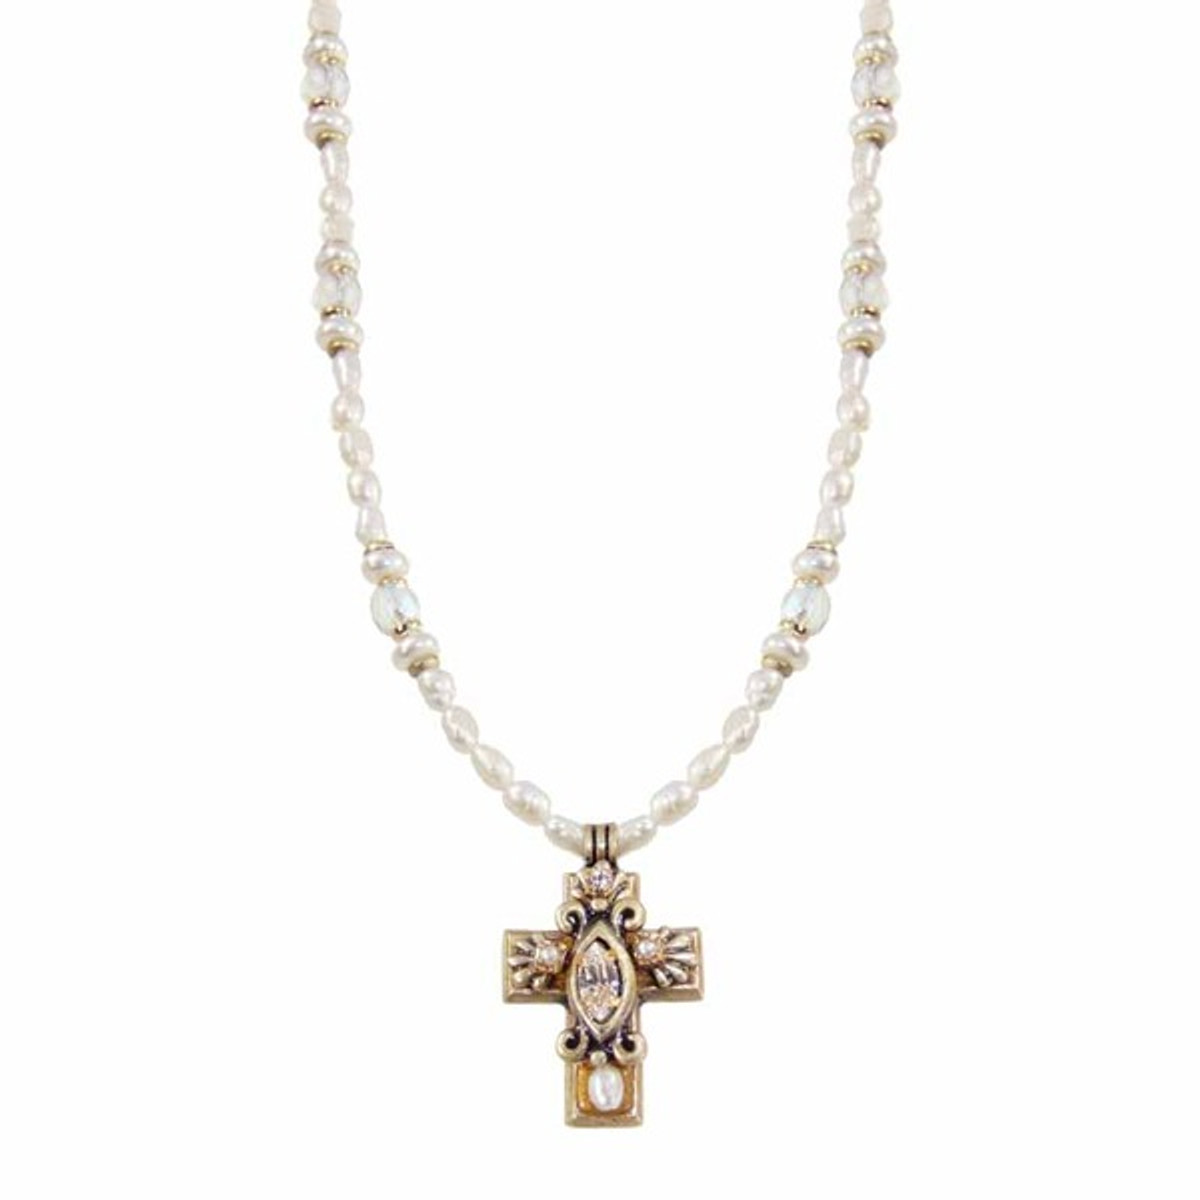 Michal Golan Small Gold Cross Necklace